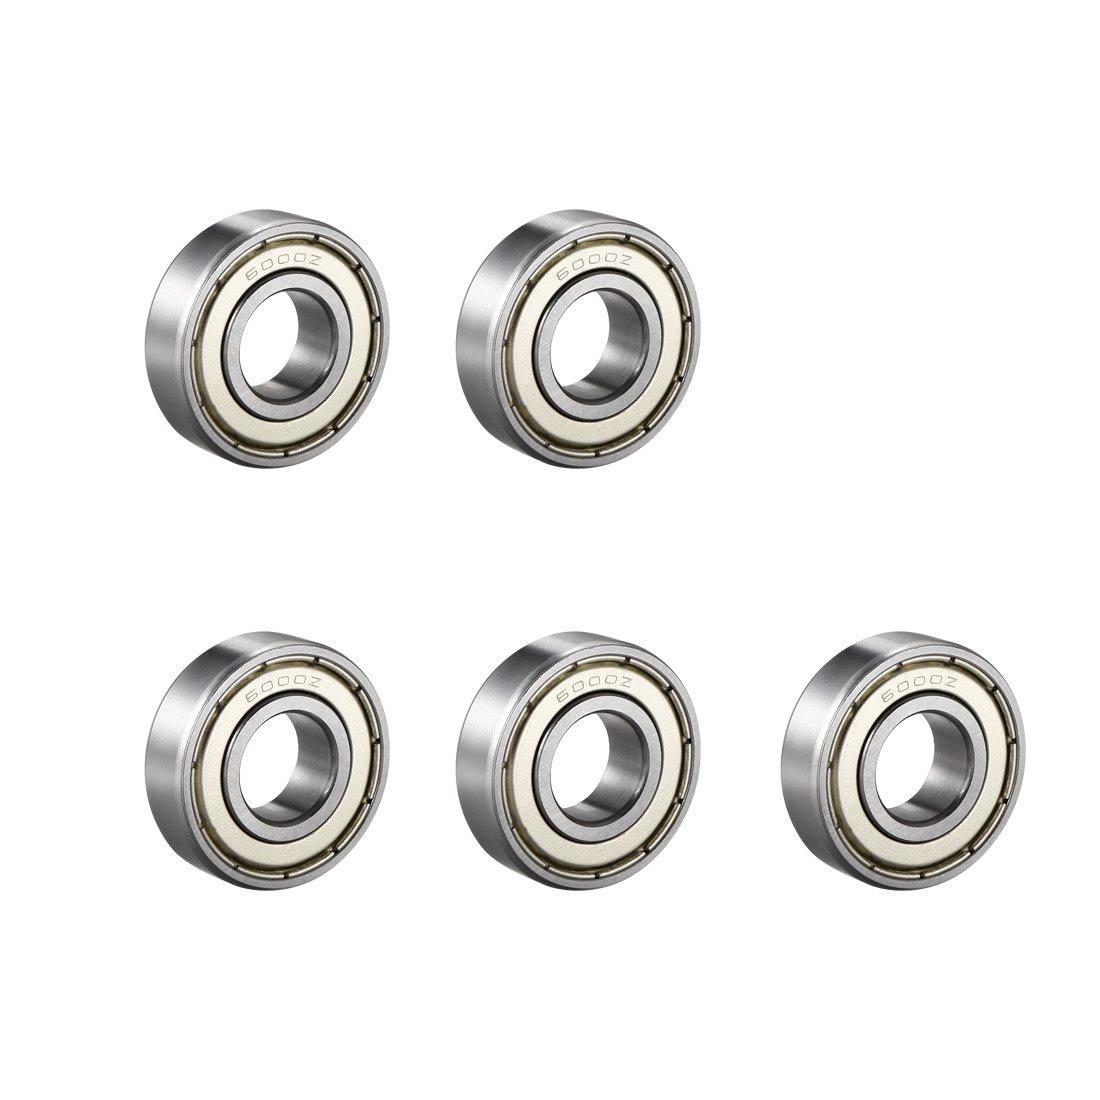 sourcing map 604Z Deep Groove Ball Bearing Single Shield 60014 4mm x 12mm x 4mm Chrome Steel Bearings Pack of 10